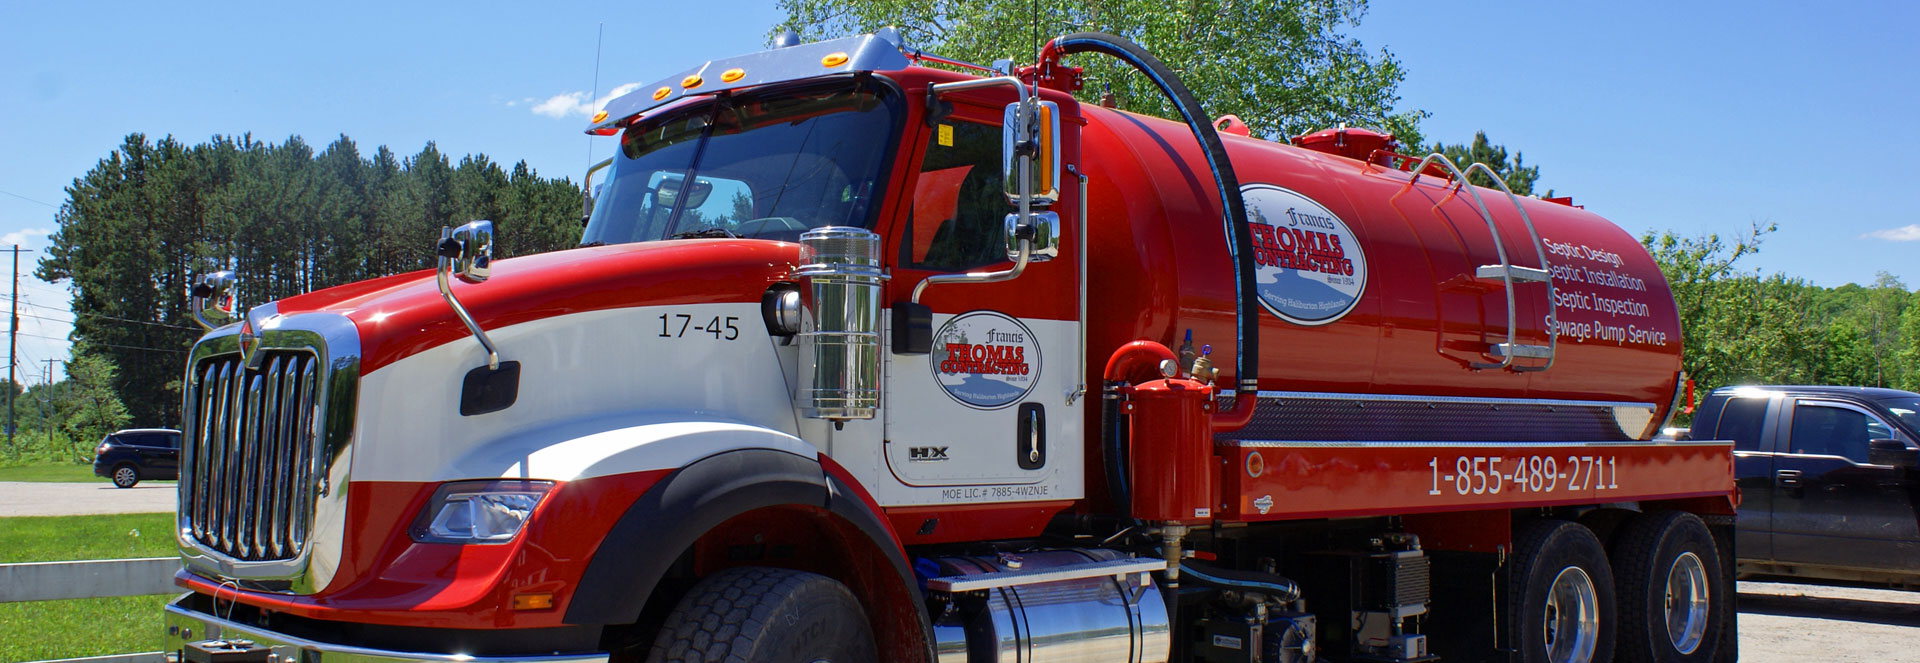 Image of our tanker truck